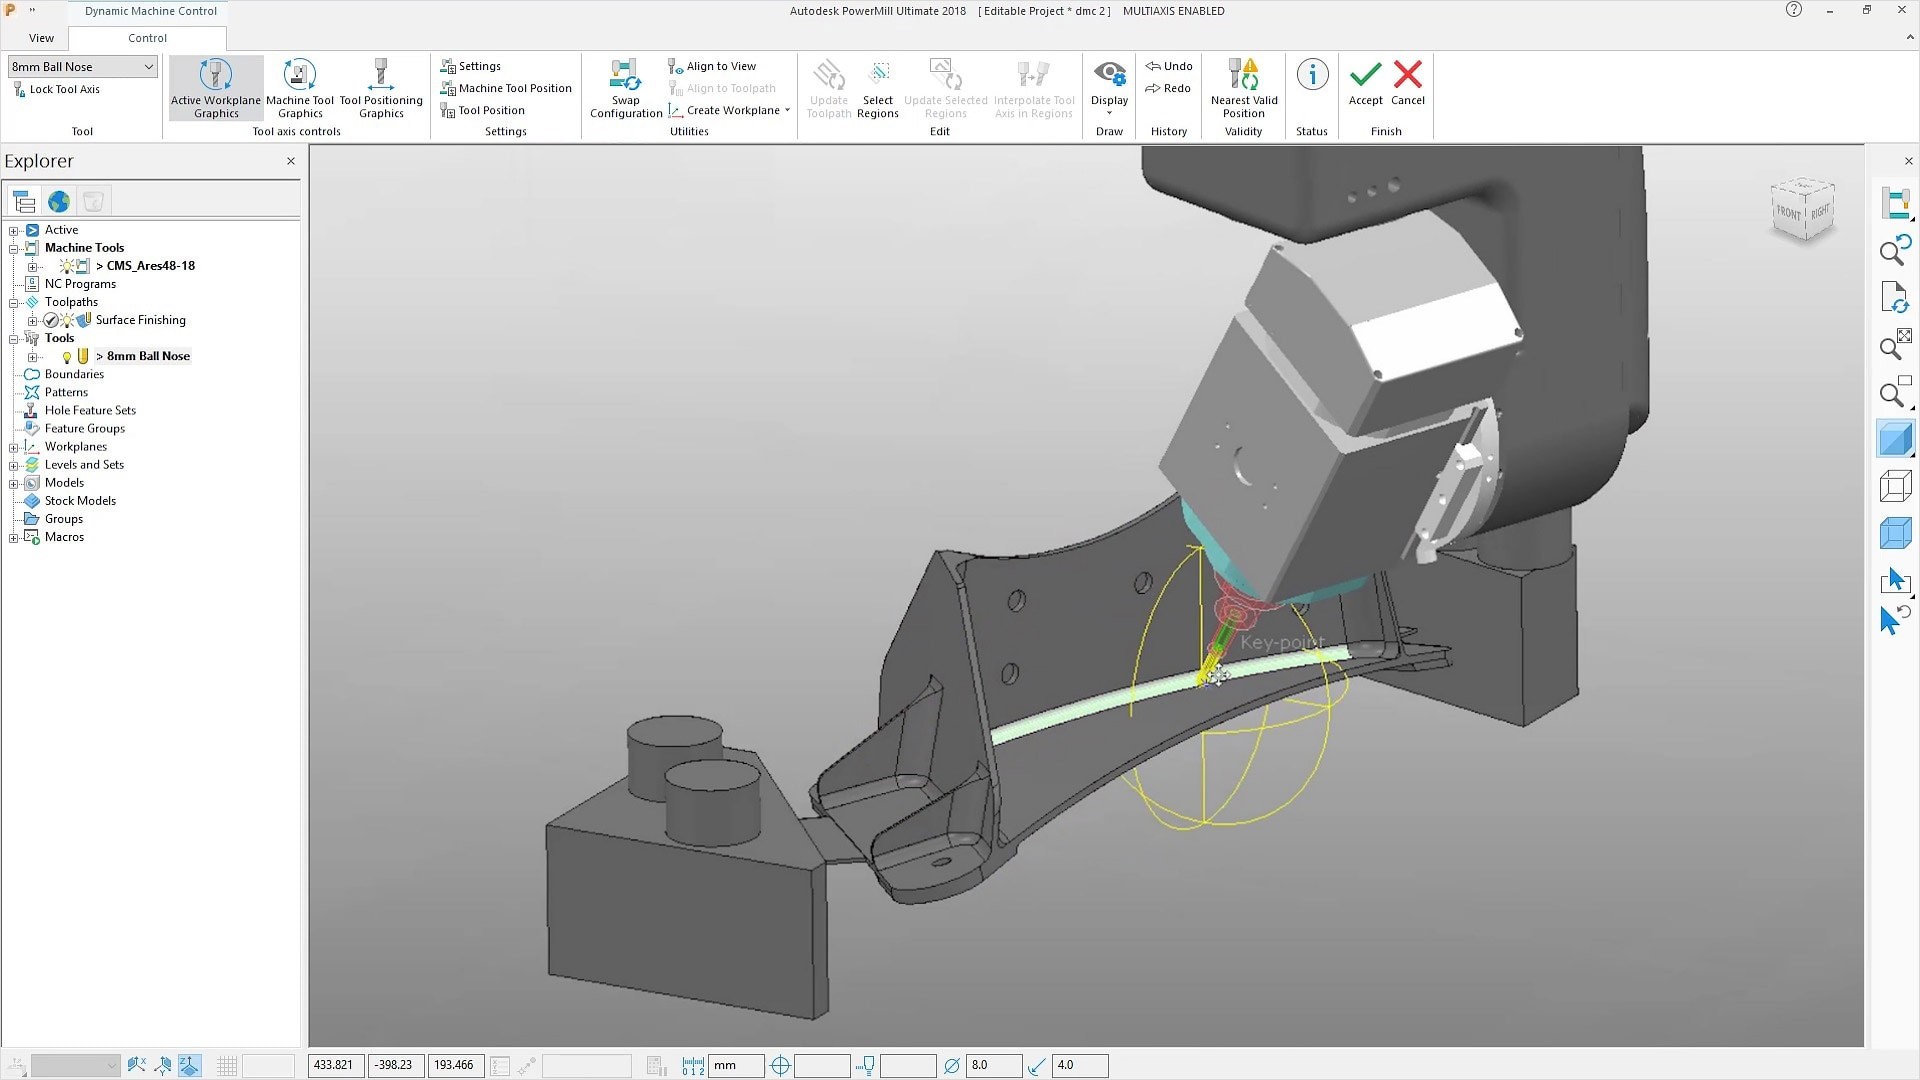 PowerMill | 5-Axis CAM Software | 5-Axis Machining | Autodesk